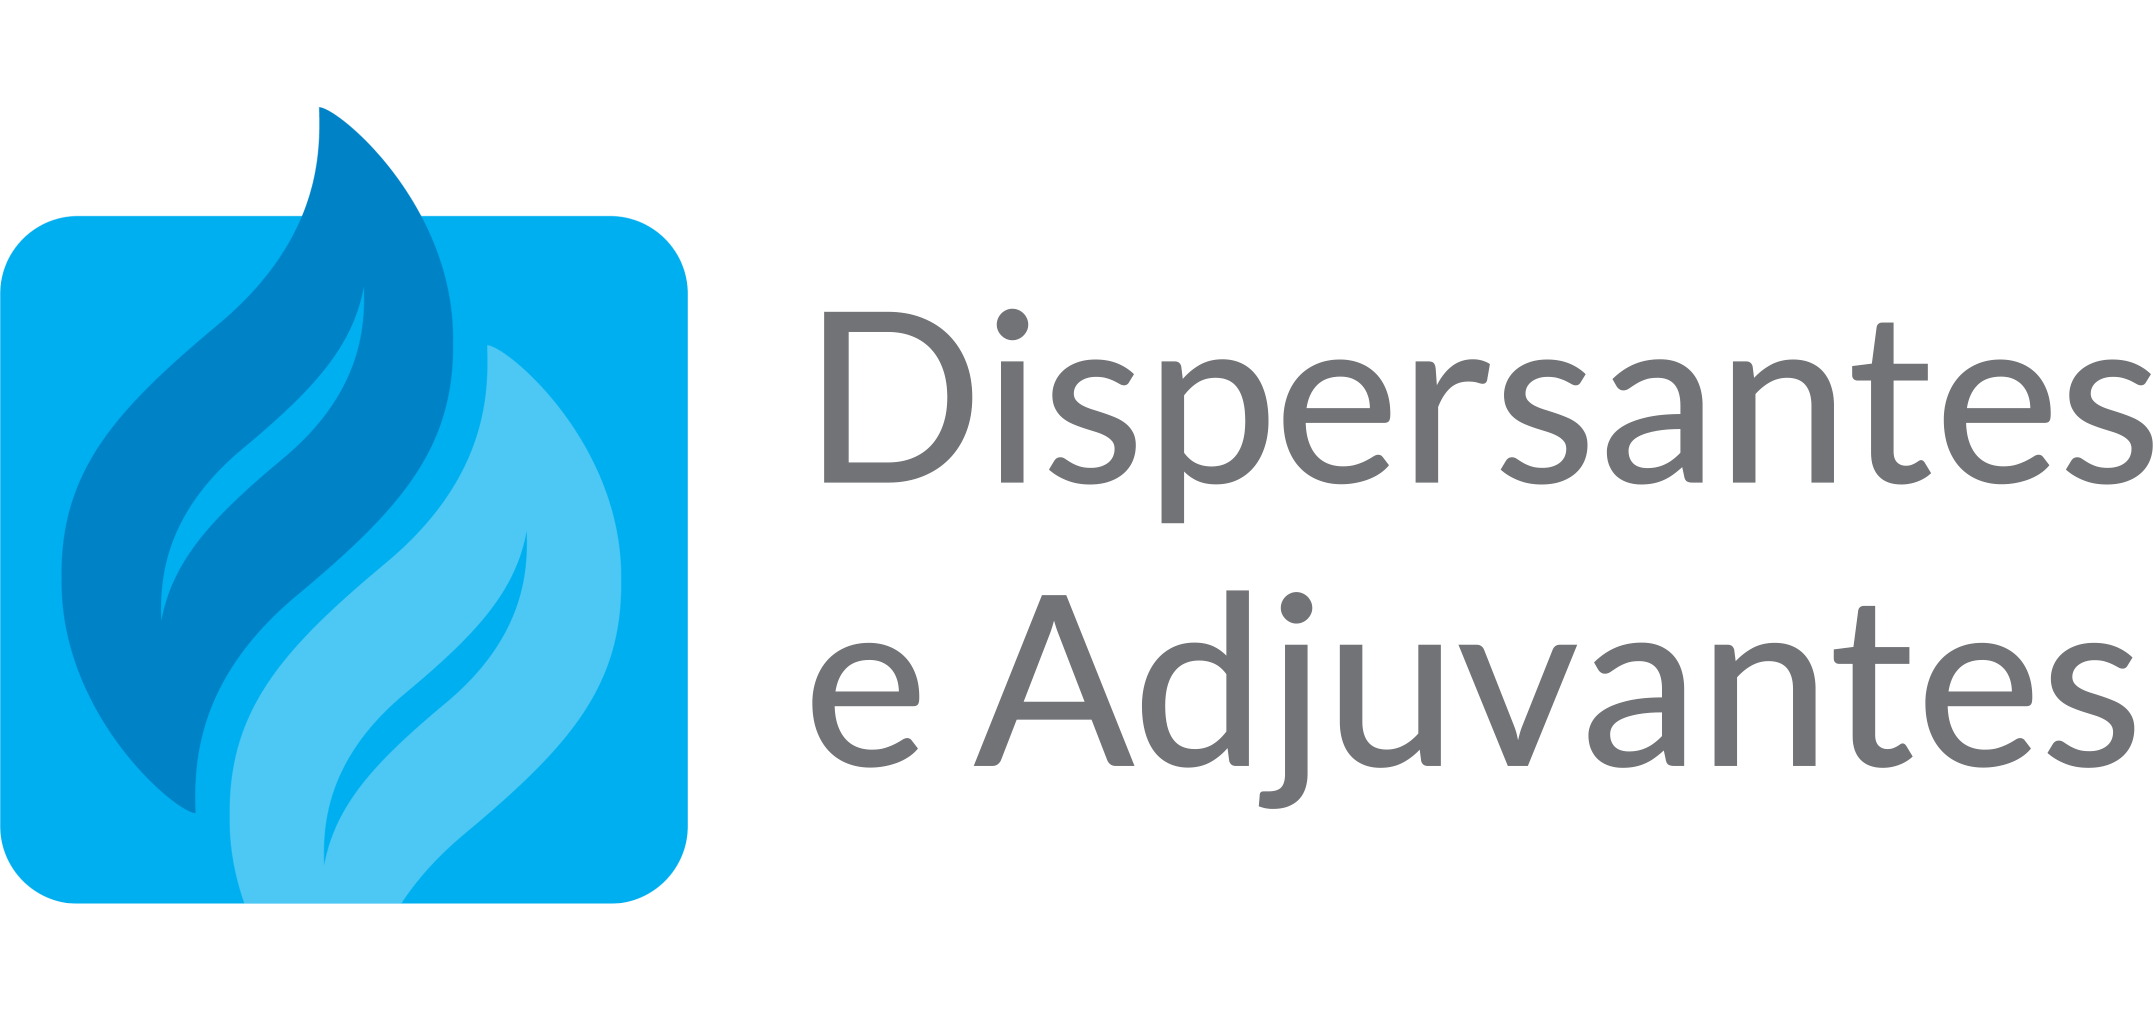 Icone da Categoria - Dispersantes e Adjuvantes